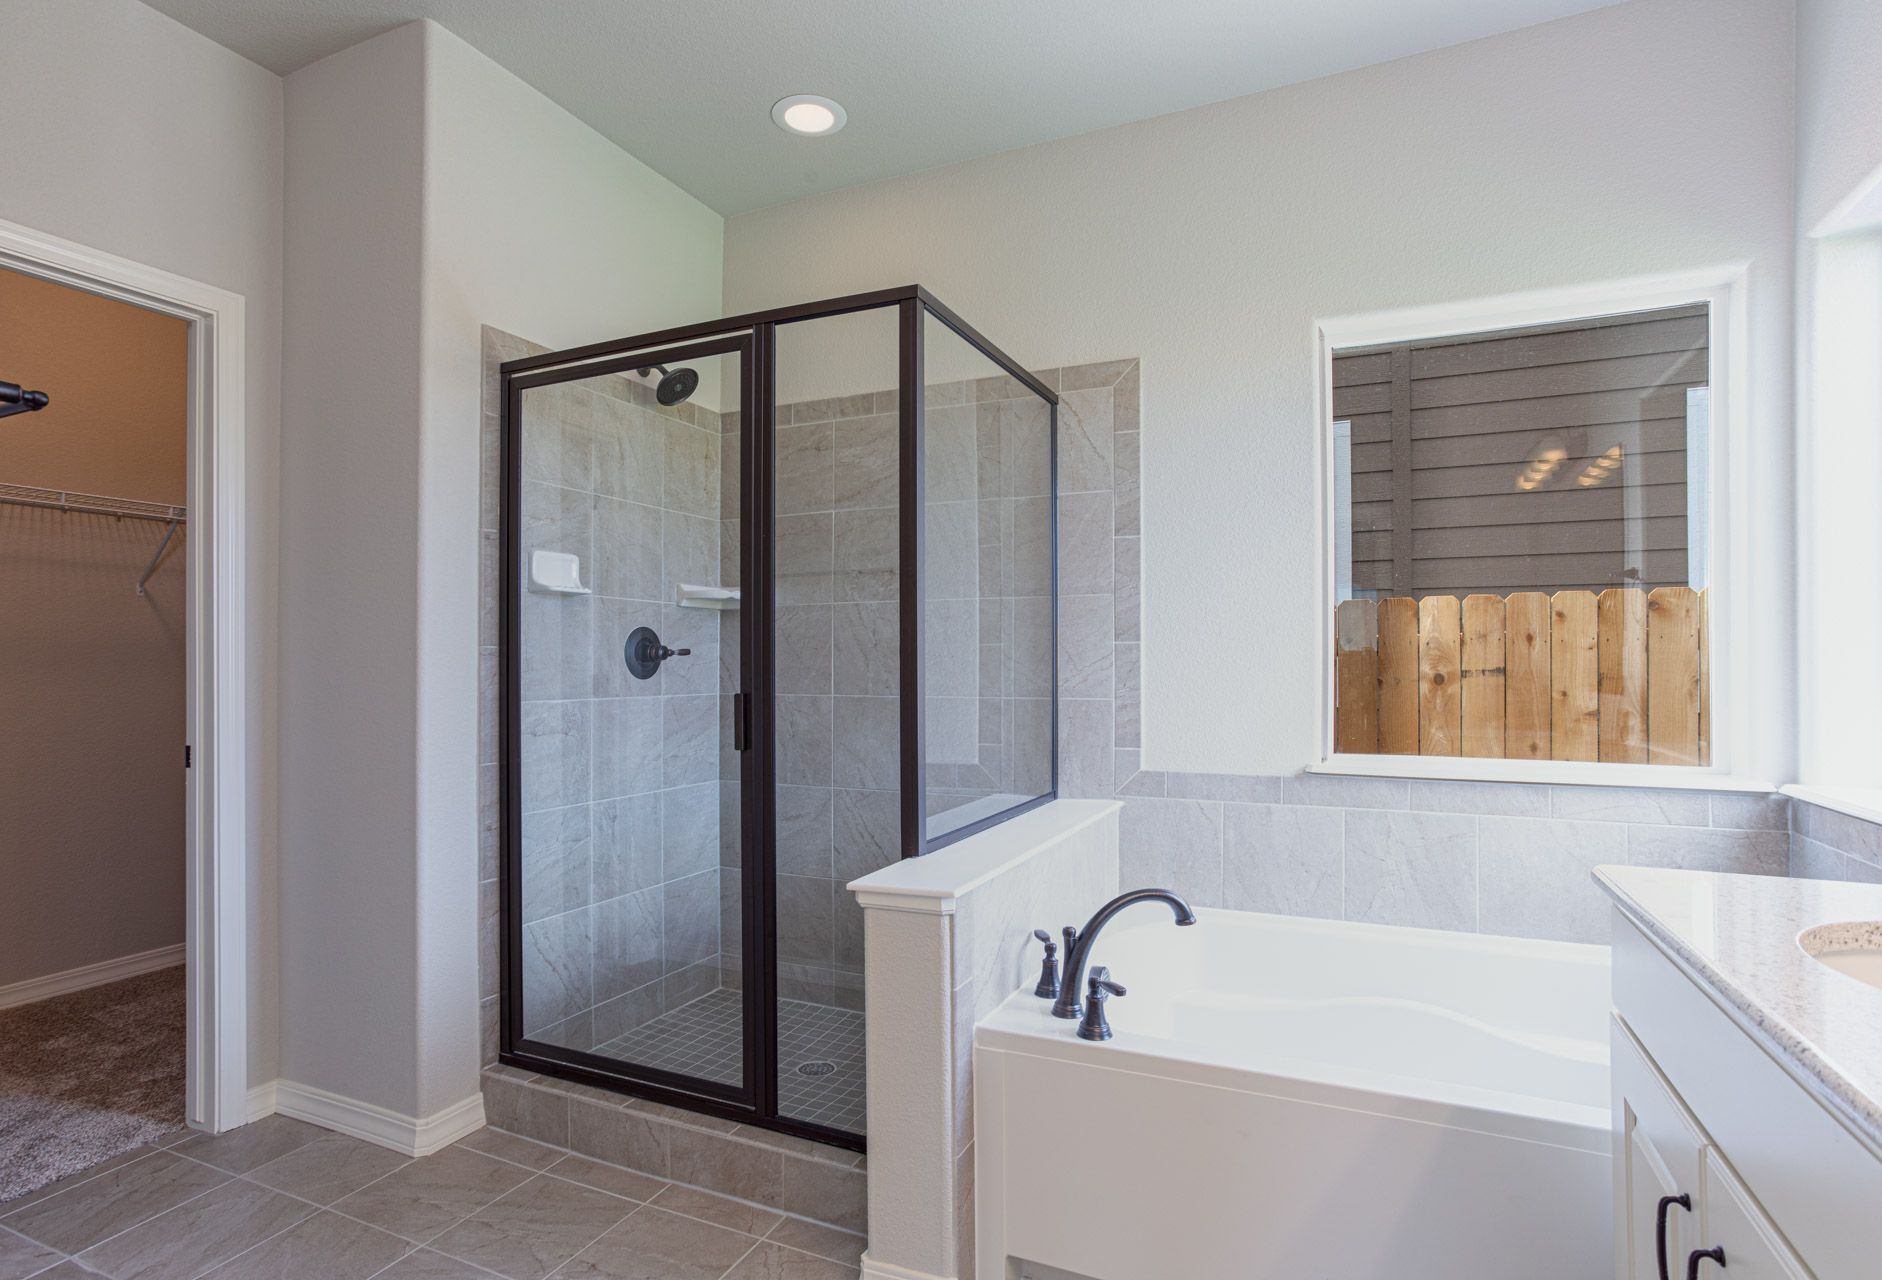 Bathroom featured in The Savannah By Challenger Homes in Fort Collins-Loveland, CO